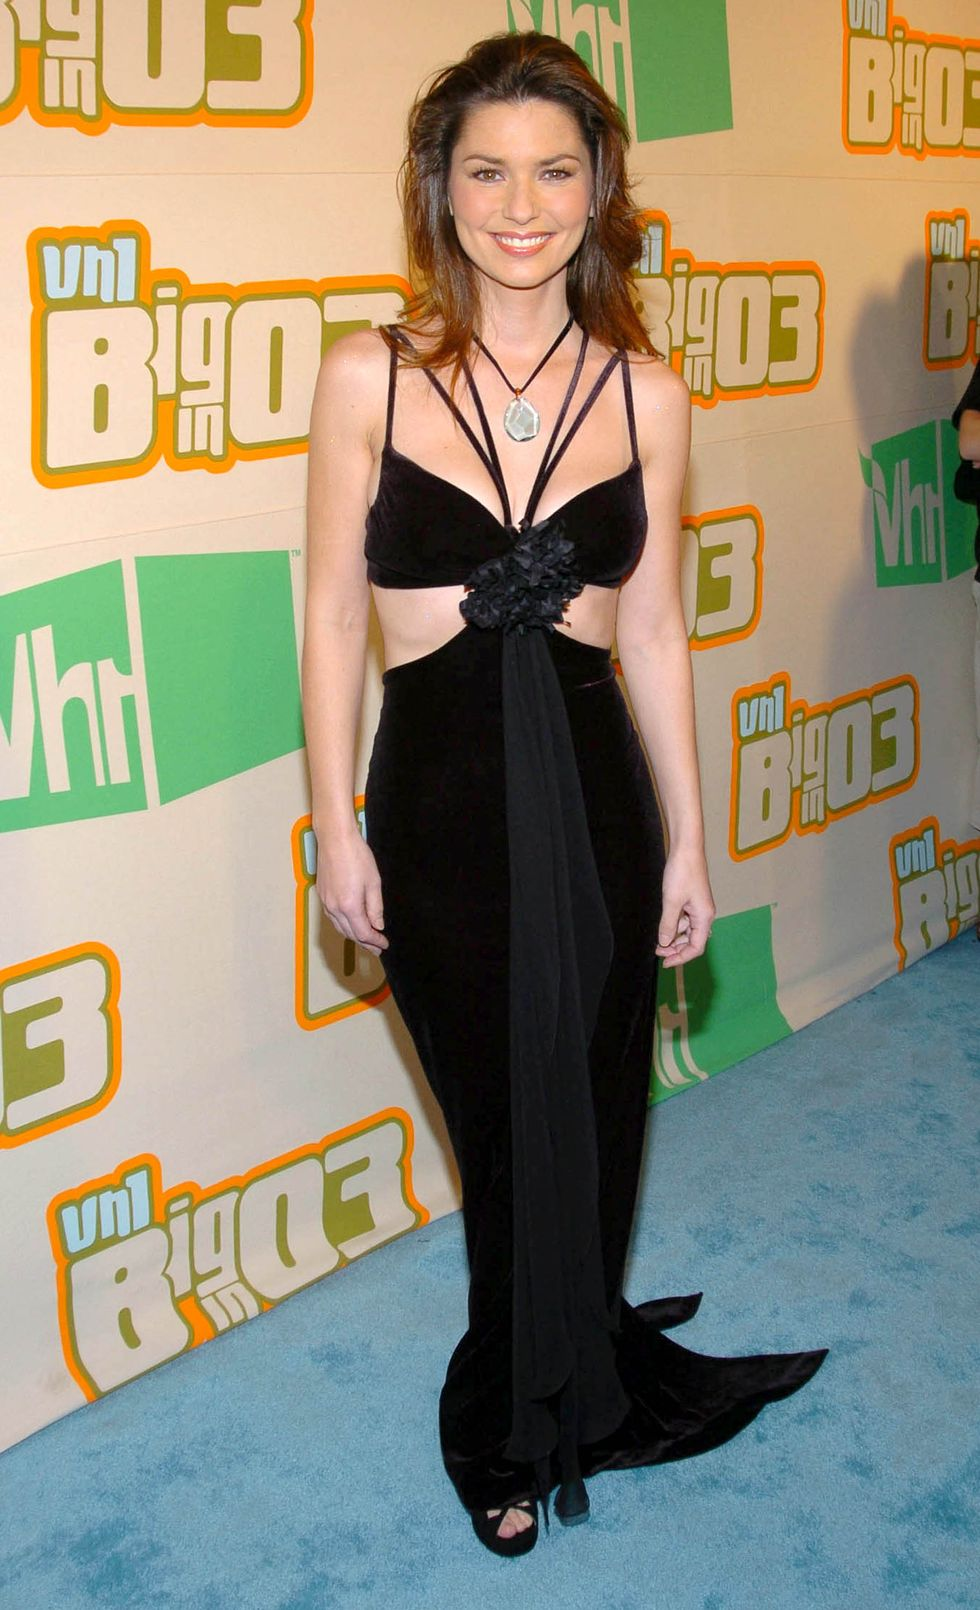 Shania Twain (Photo by KMazur/WireImage for VH-1 Channel - New York)